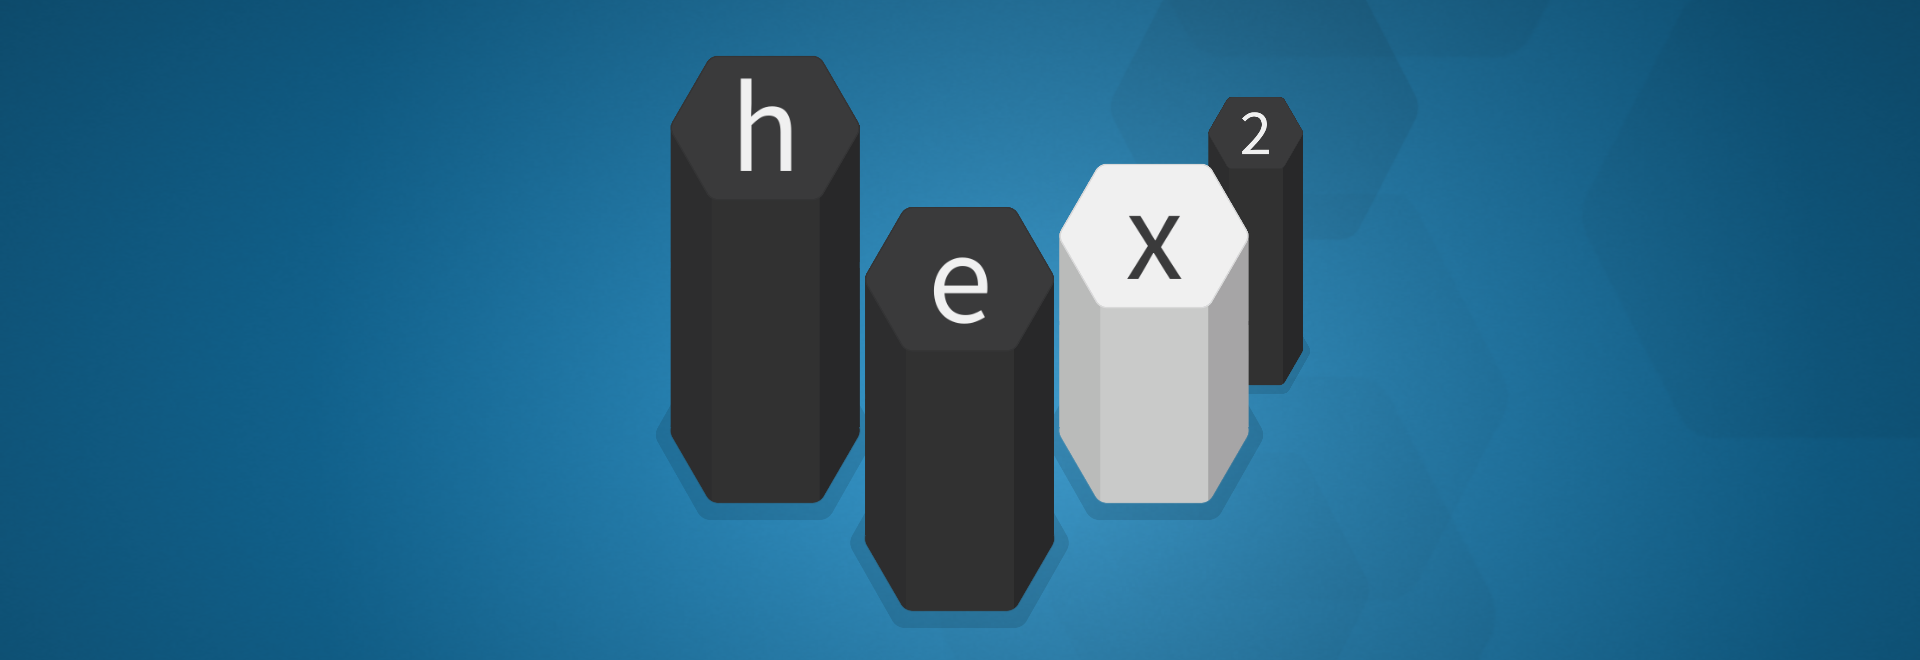 Hex Two